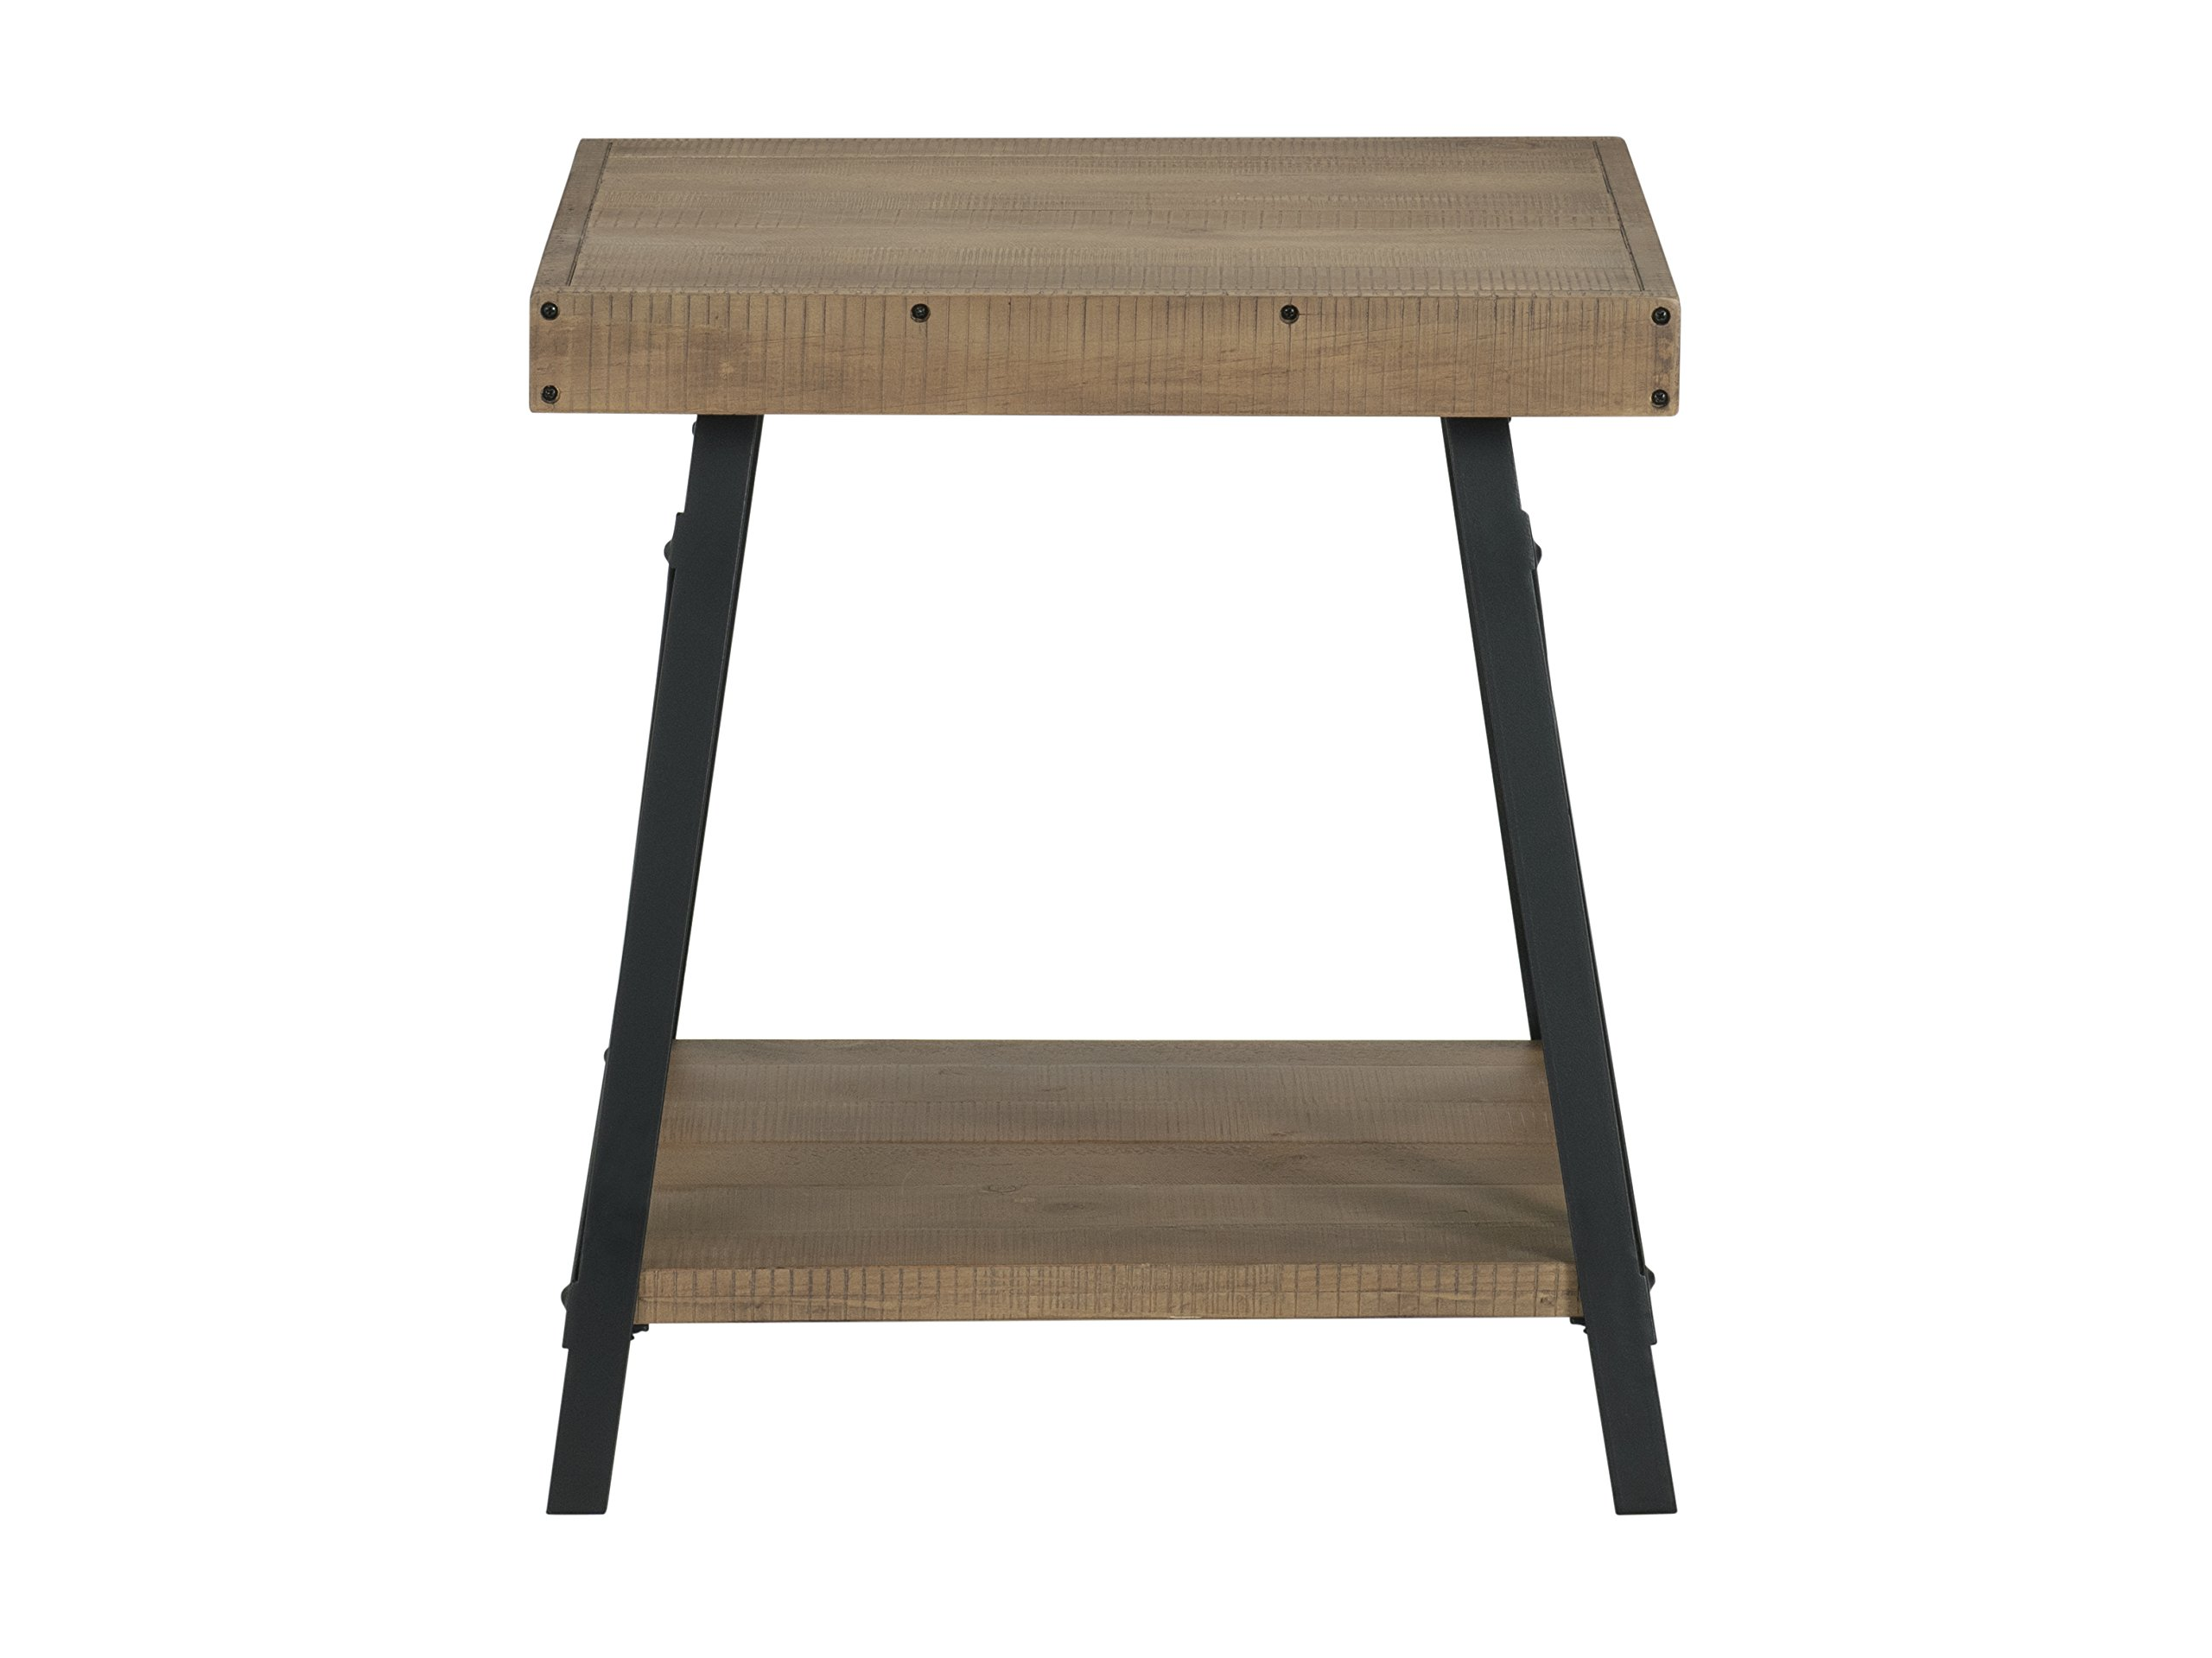 "Martin Svensson Home 890434 Xavier End Table, Reclaimed Natural - Finish: Reclaimed Natural - reminiscent of Reclaimed wood found in an old barn or warehouse Crafted from solid wood - New Zealand pine with rough hewn saw marks Exposed rivets across the Top and Black Steel metal ""x"" cross on the end caps give it a distinct industrial and rustic look - living-room-furniture, living-room, end-tables - 71FTg SAVIL -"